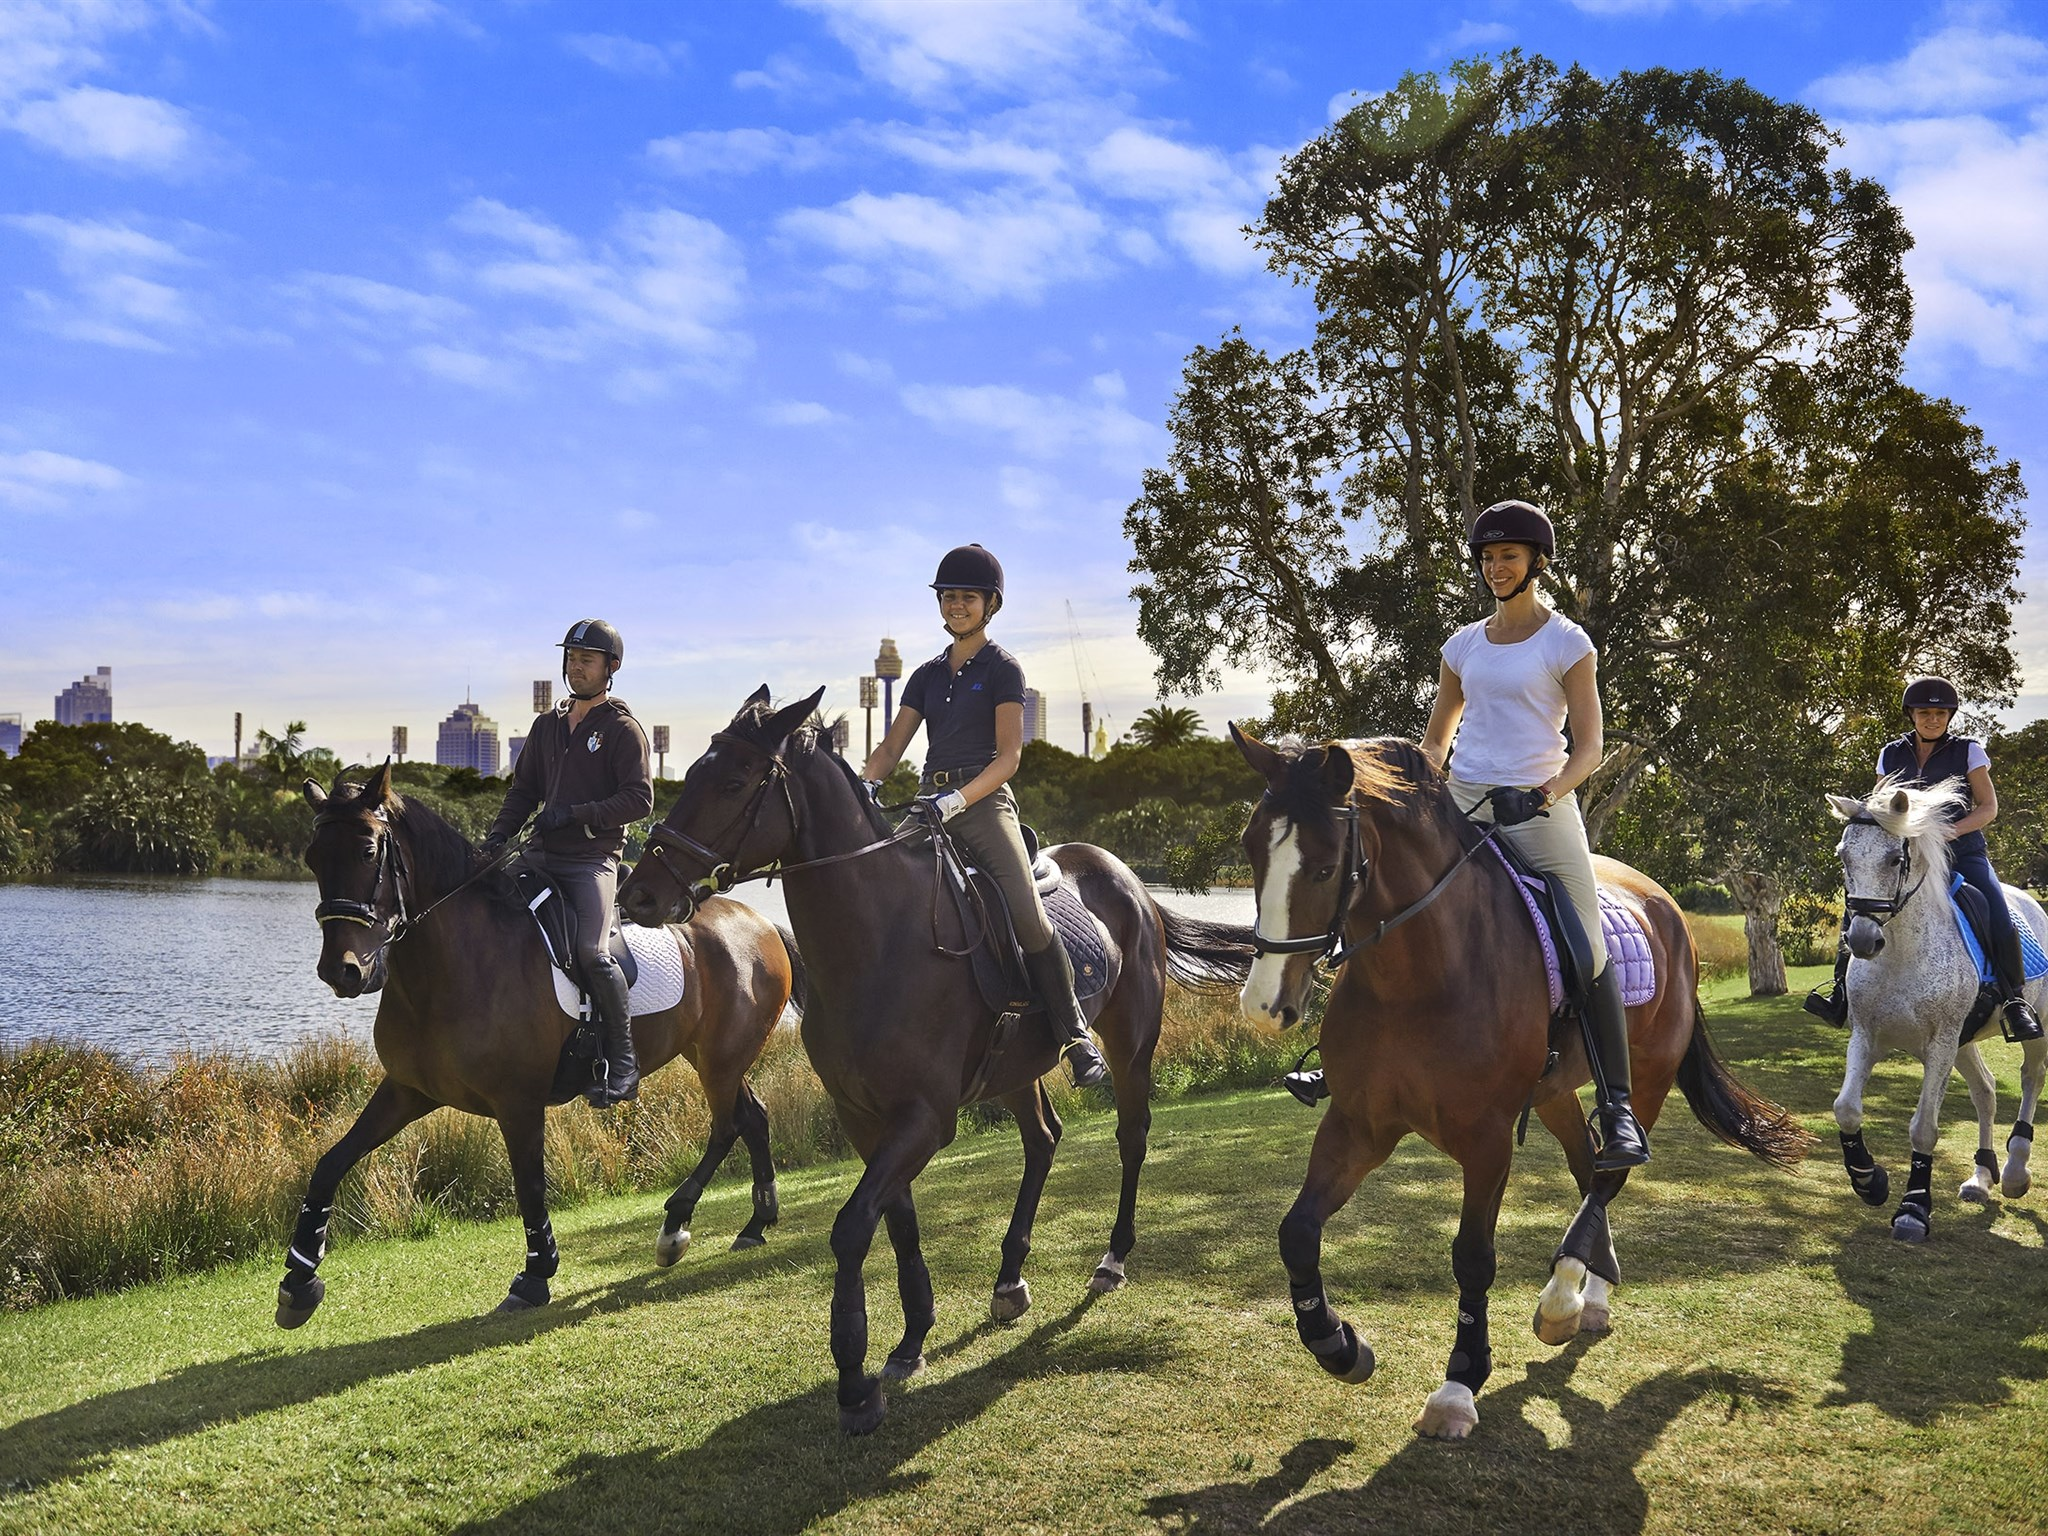 Rumours fly around future of Moore Park Stables